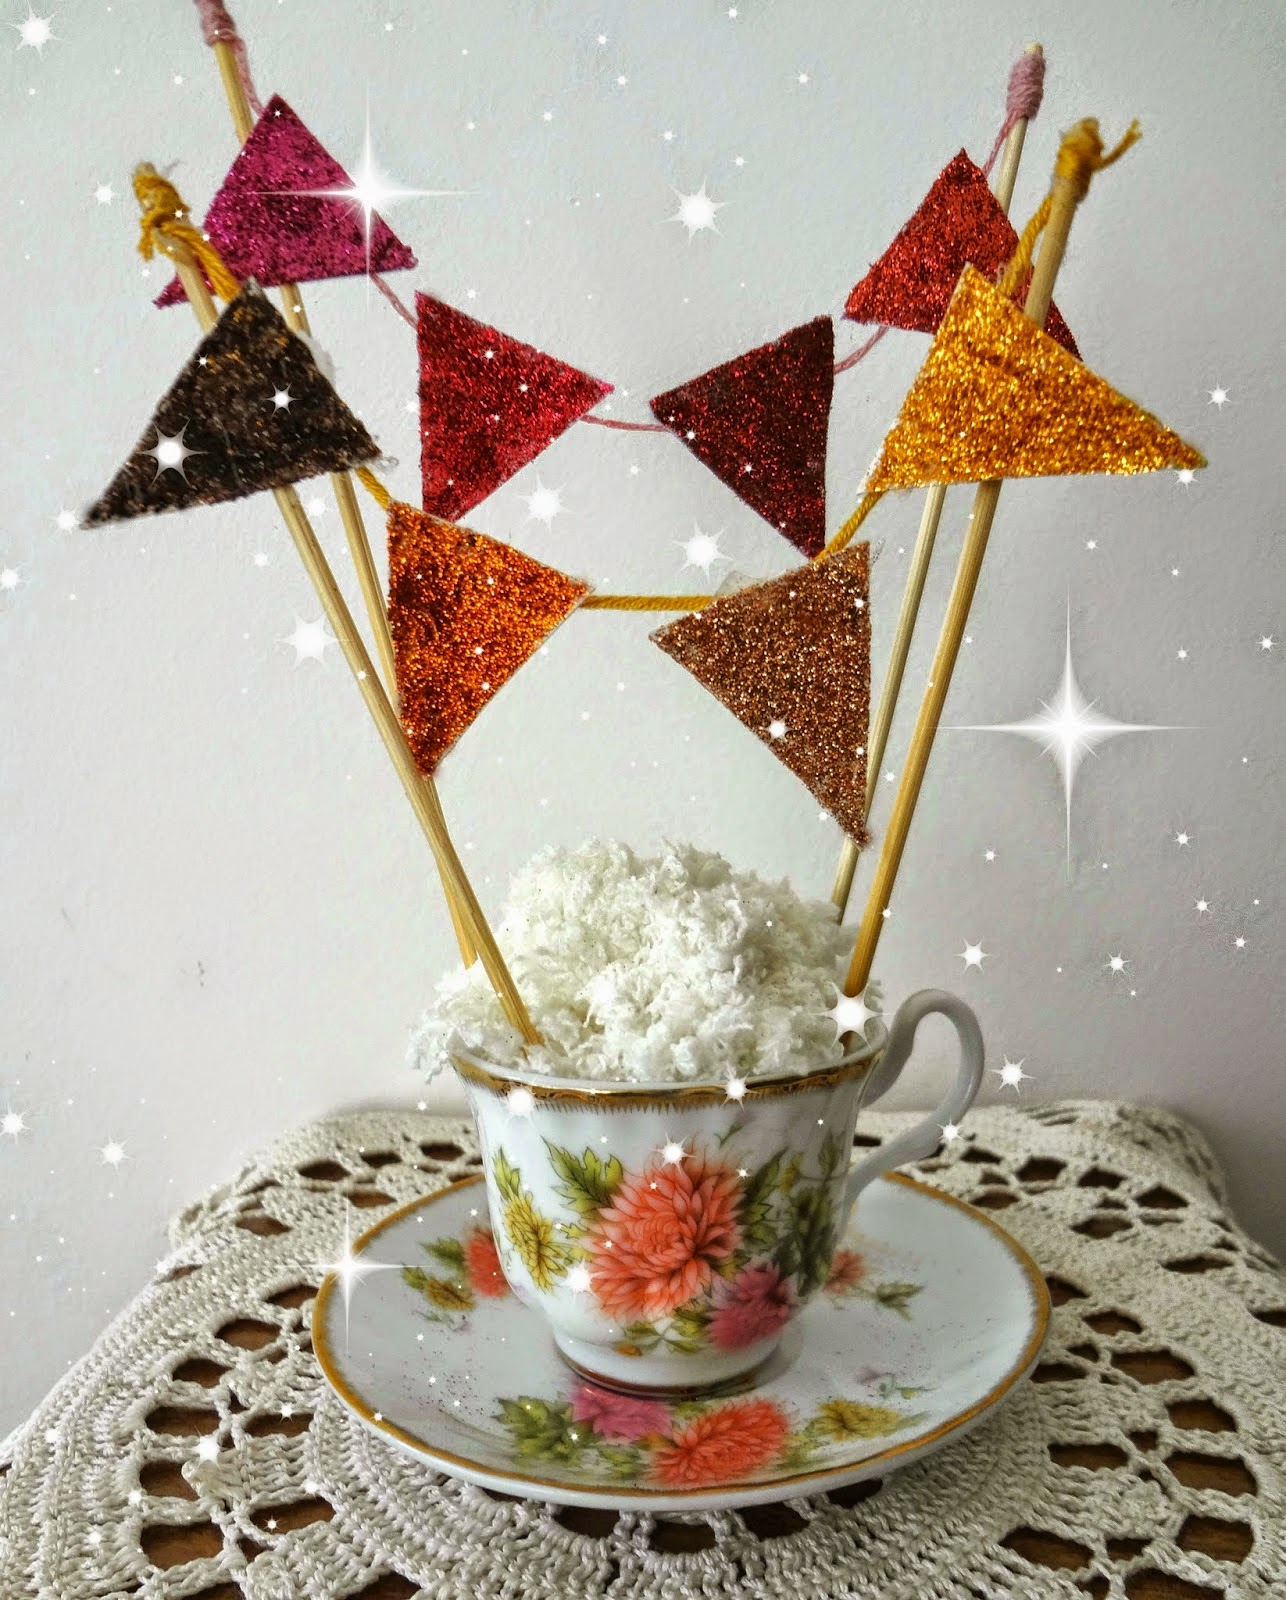 http://thelittletreasures.blogspot.com/2015/02/party-bunting-in-cup-tutorial.html